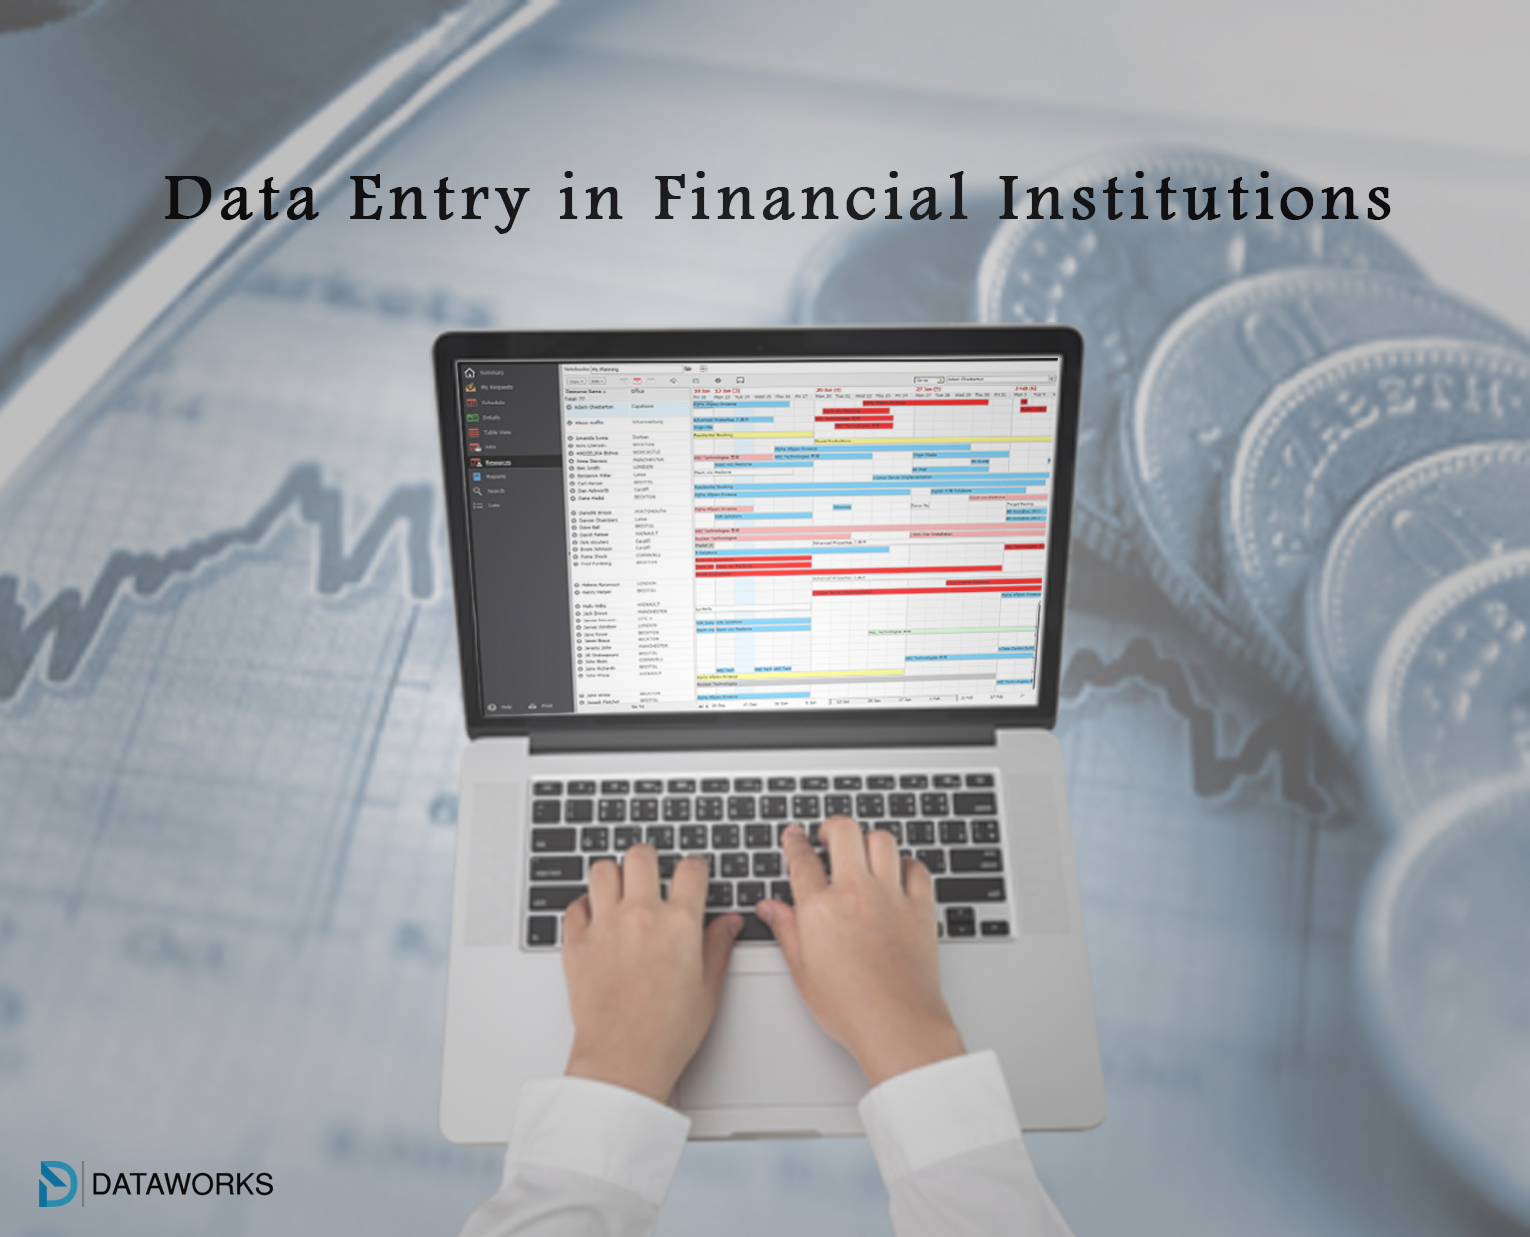 What is the role of data entry in financial institutions?